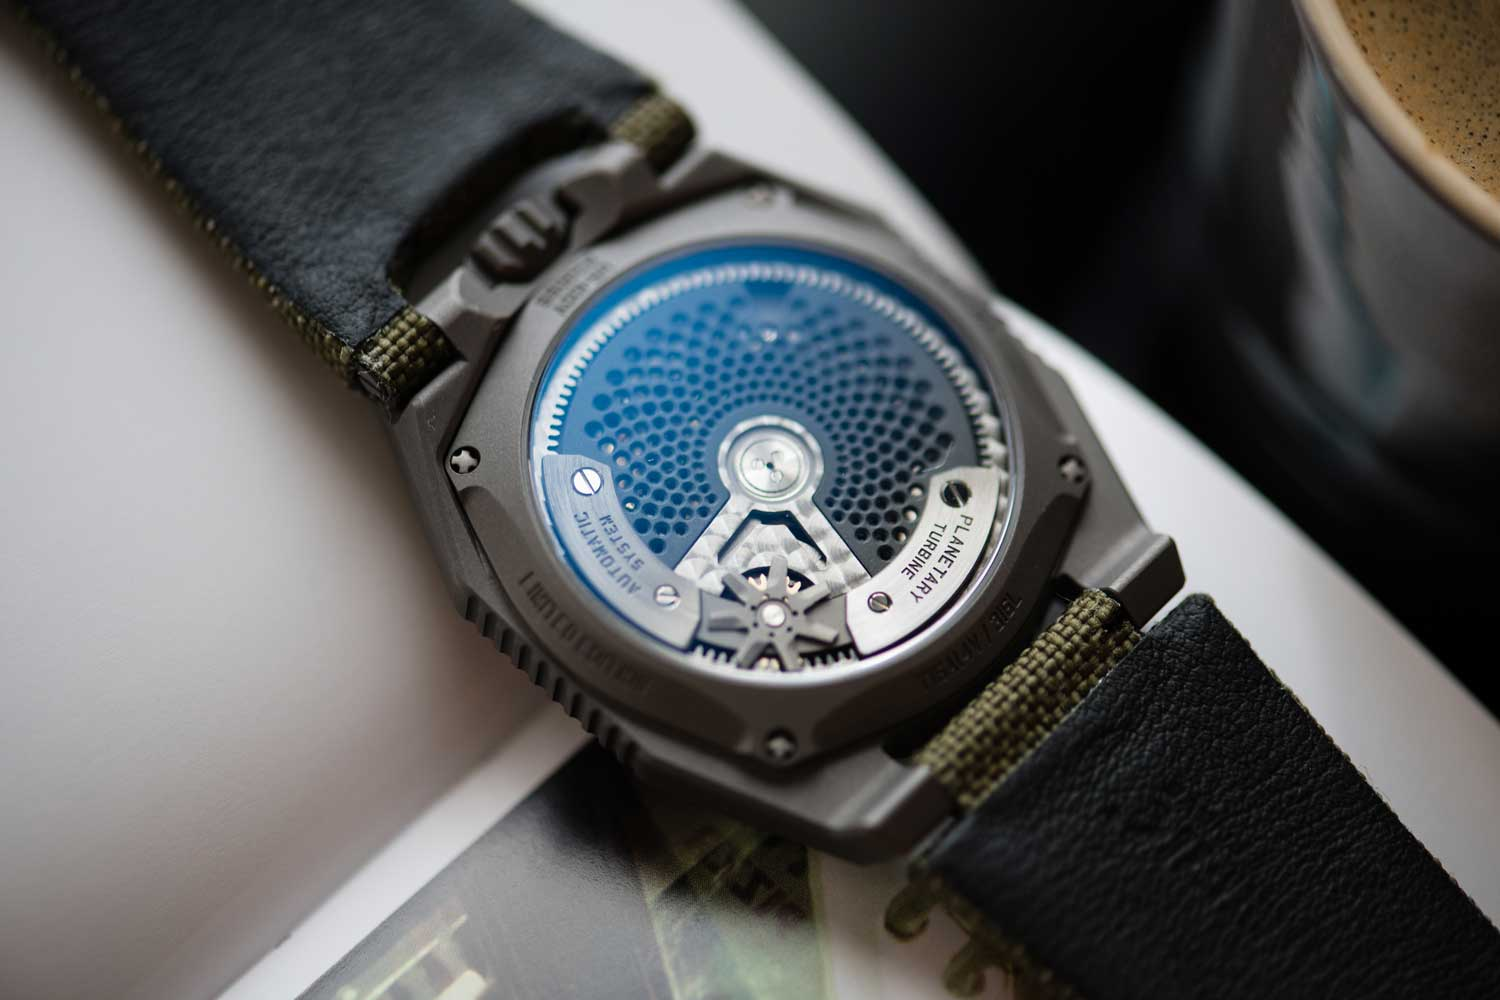 The watch is powered by the UR 12.02 automatic movement (Image: Peter Tung)